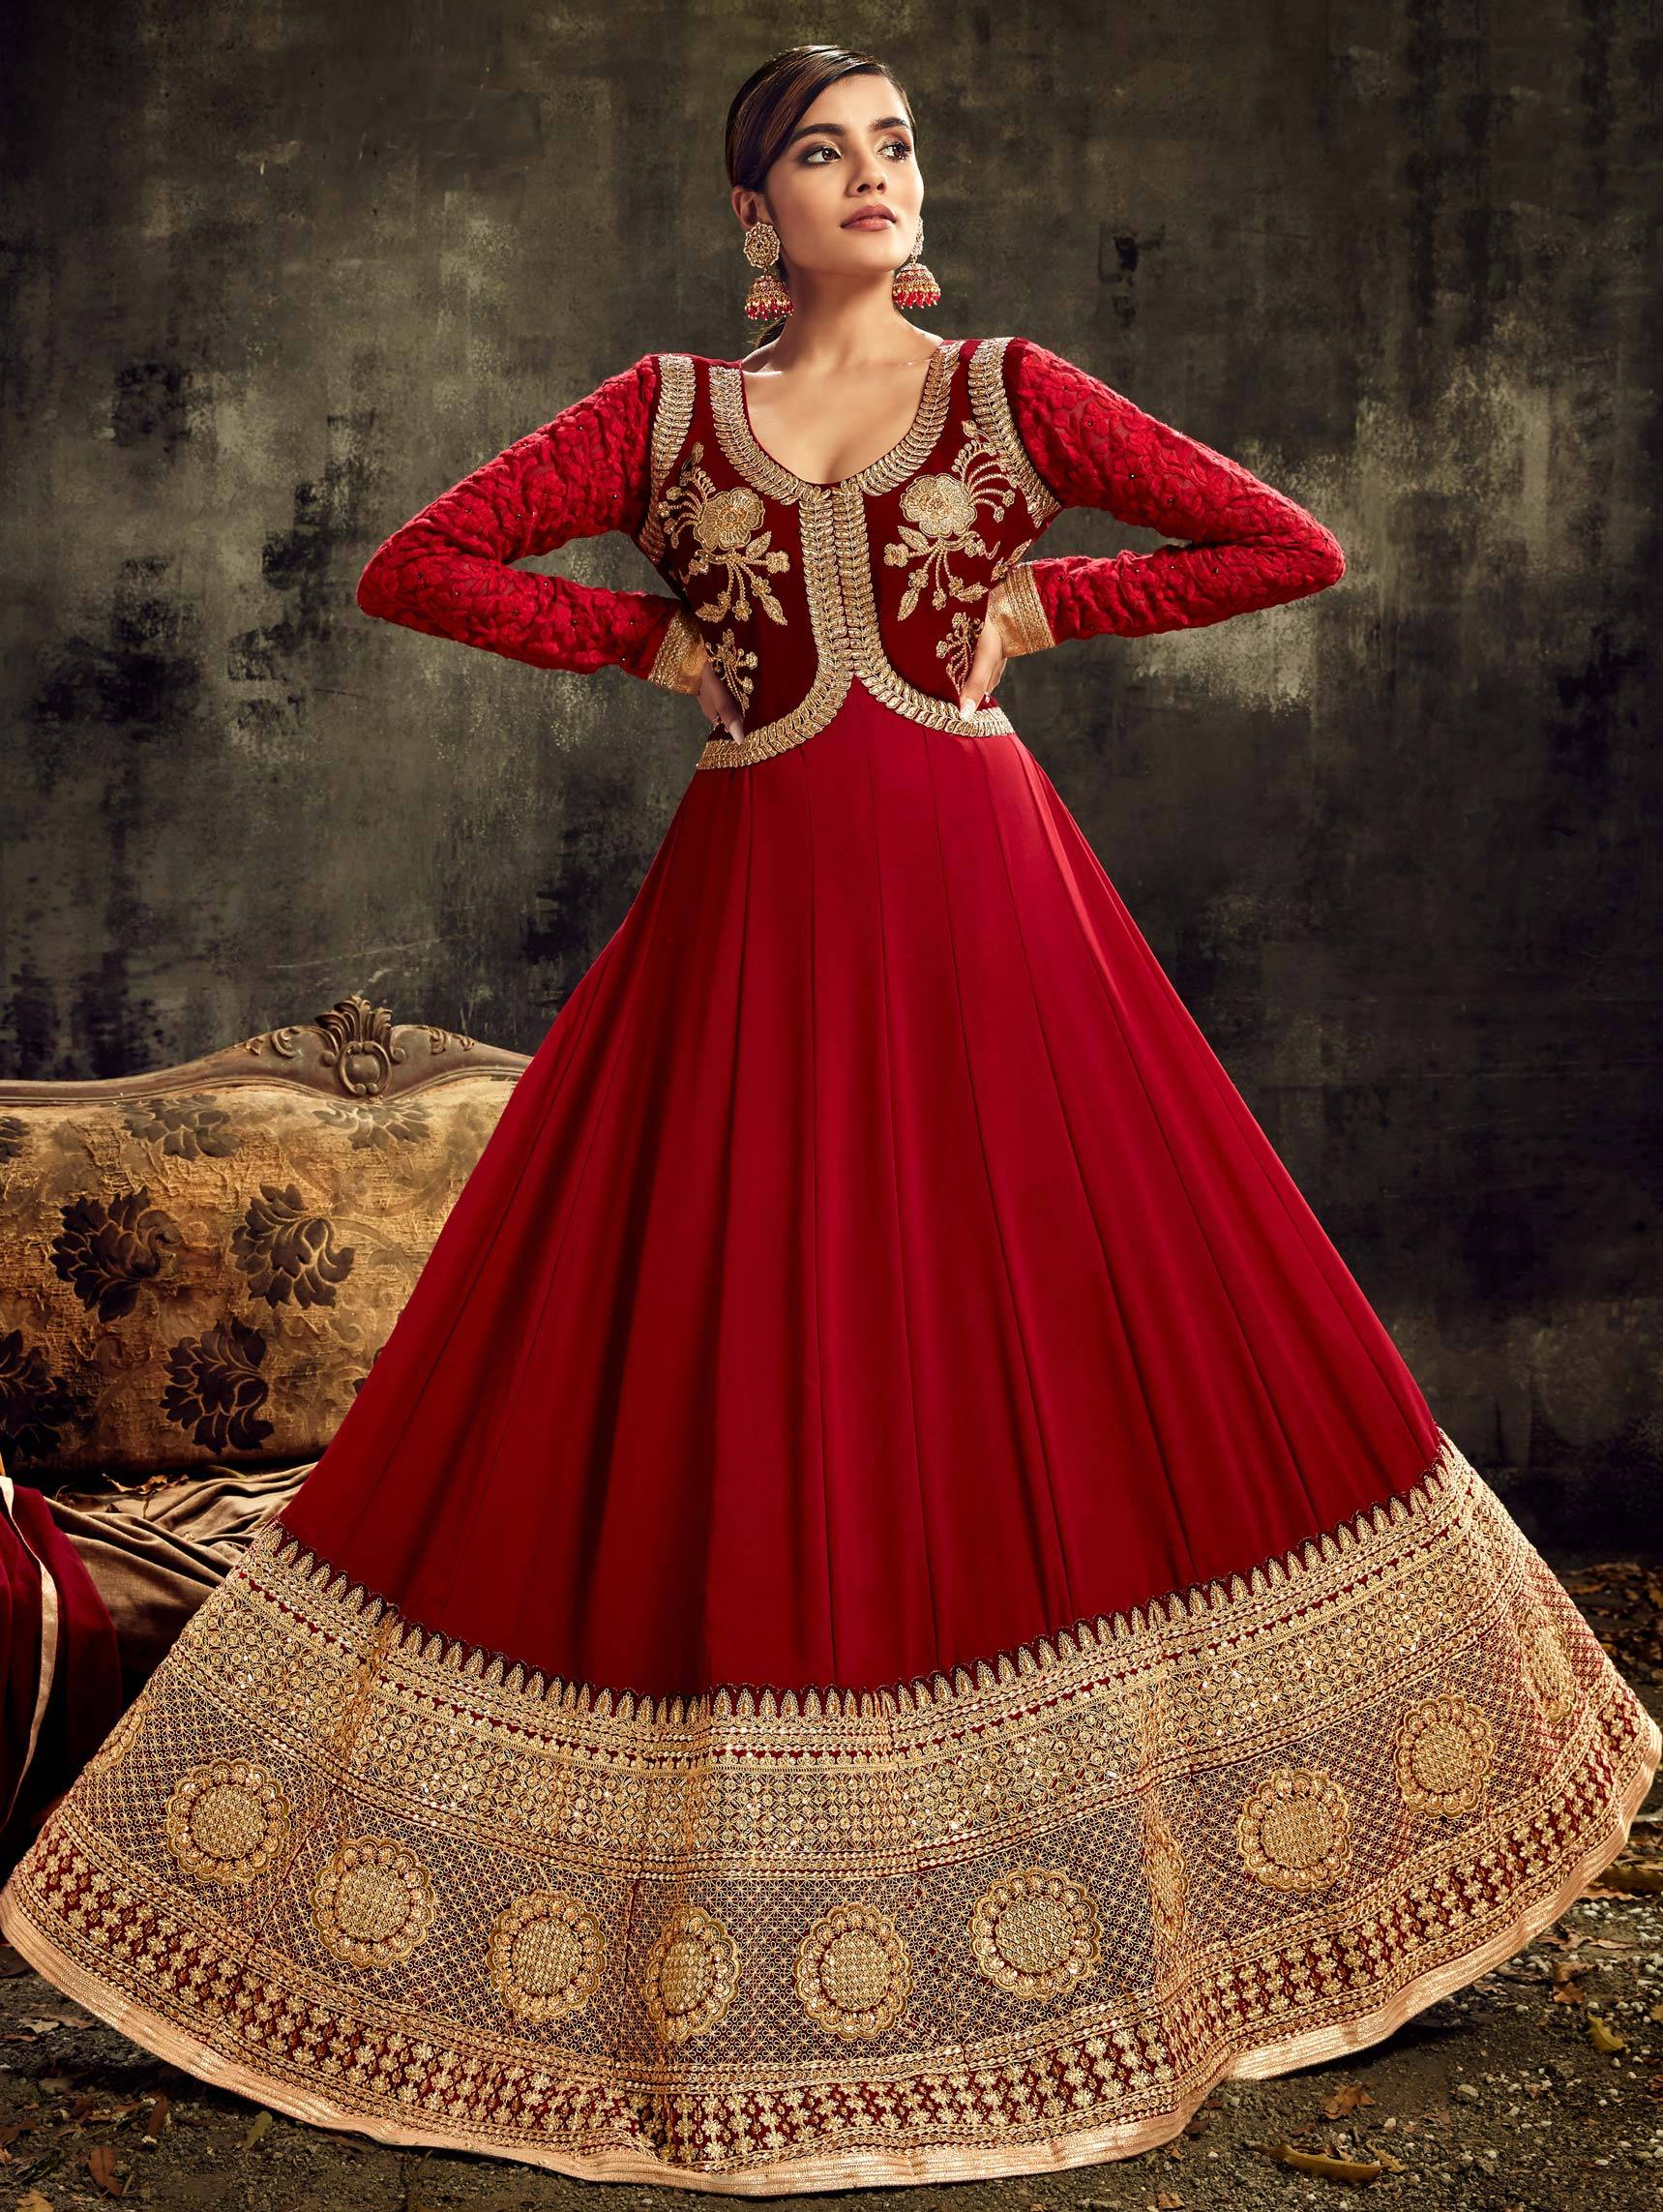 Red Anarkali Suit Designs With Gold Border